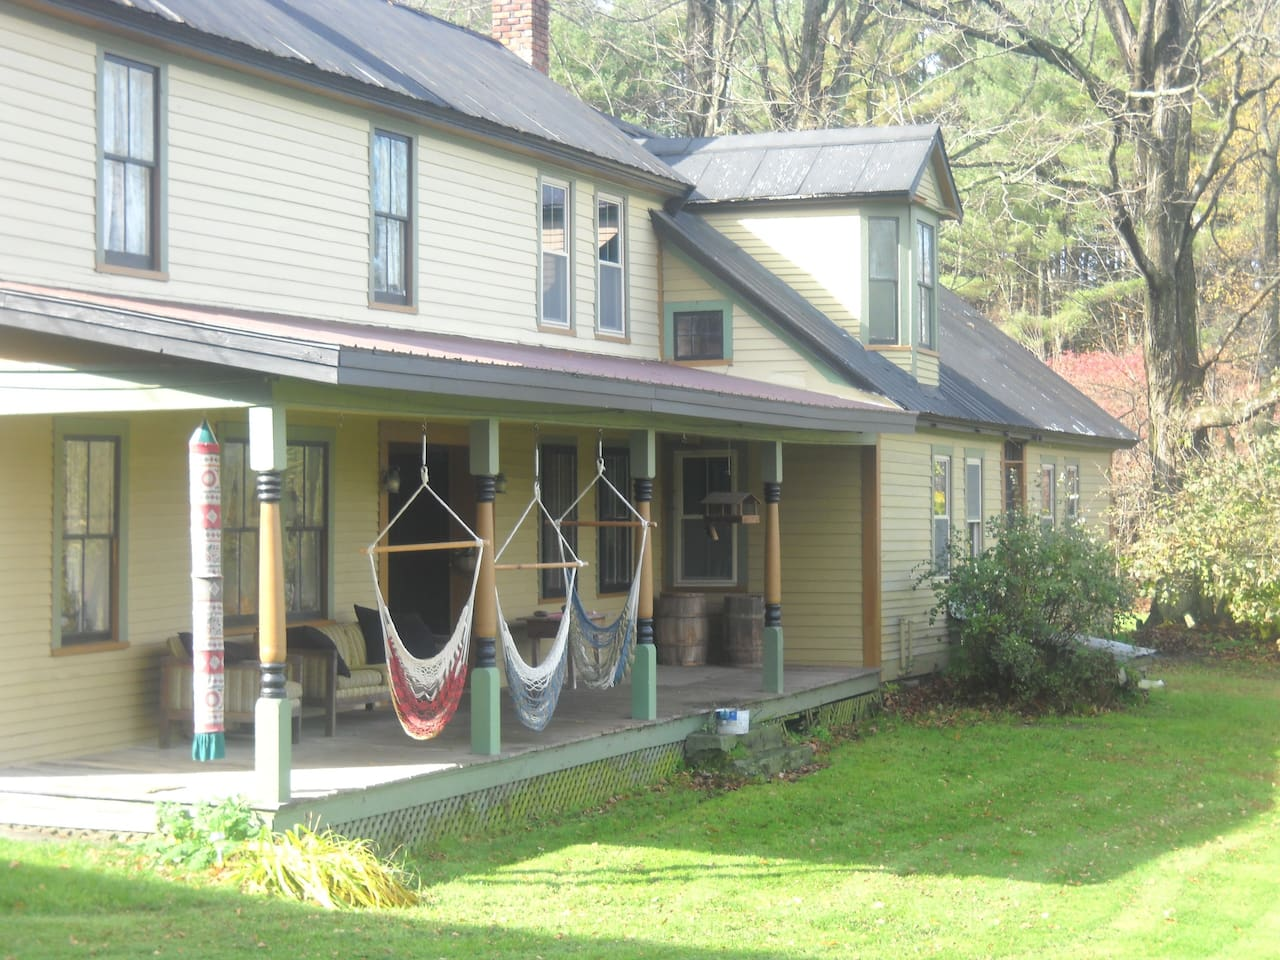 Relax on the Porch at Royalton Bed and Breakfast - Enjoy the View!